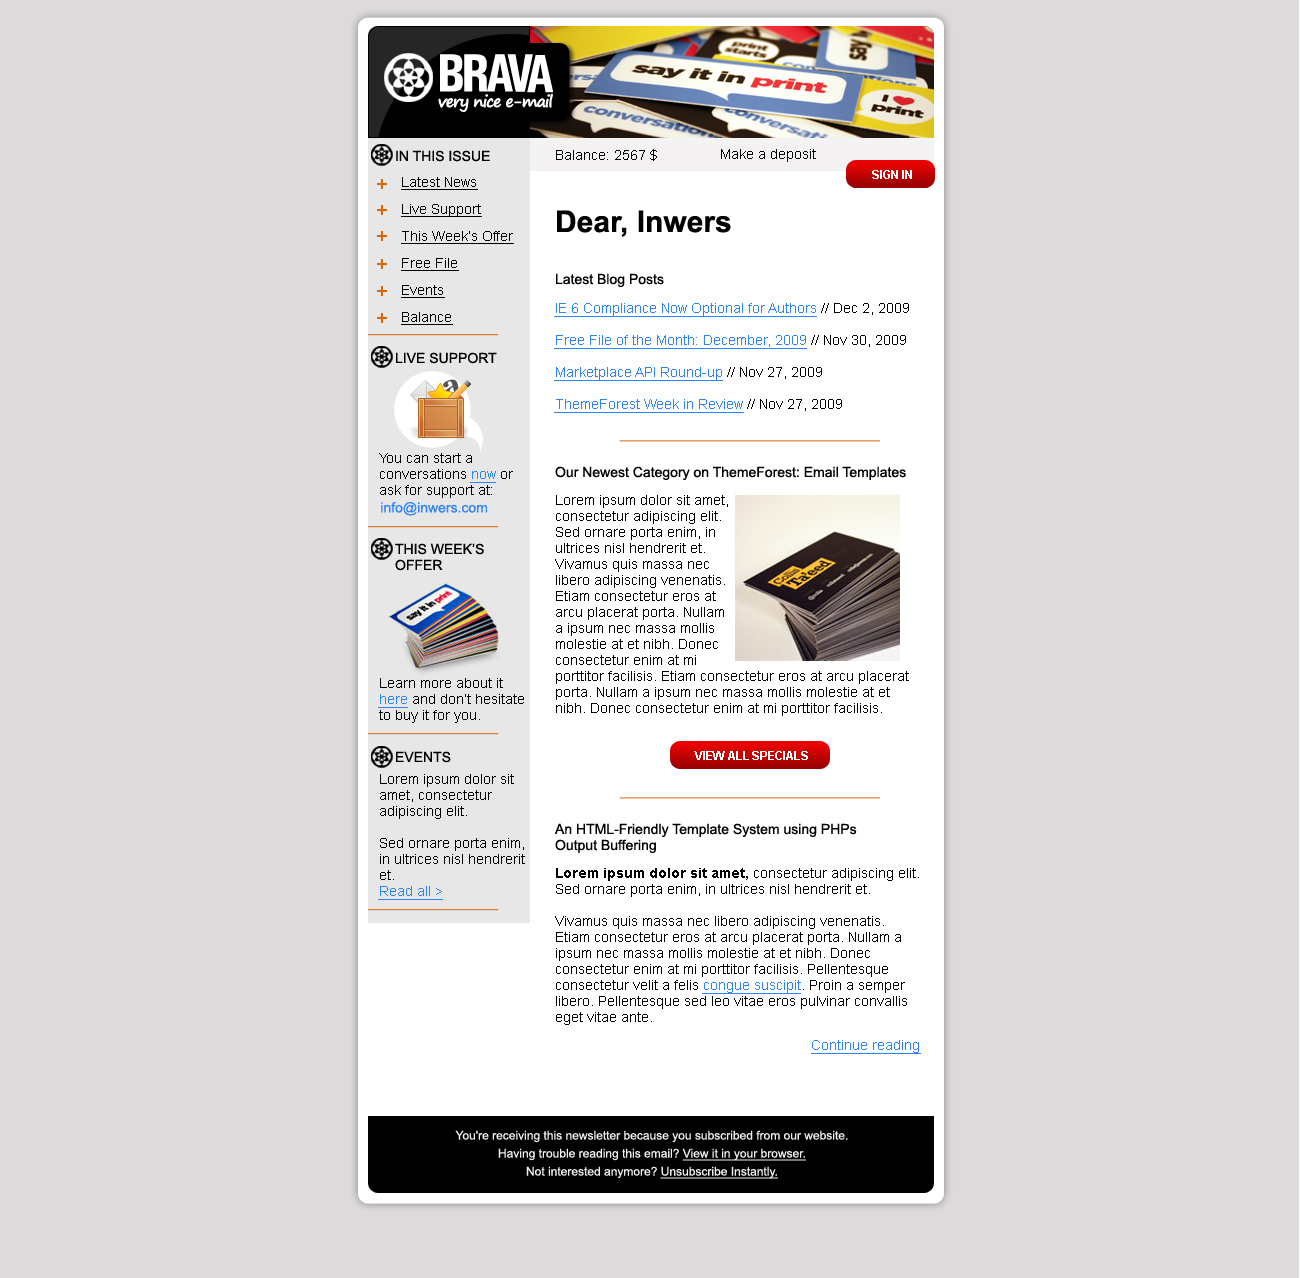 BRAVA - a corporate nice e-mail - Inwers - Brava Black